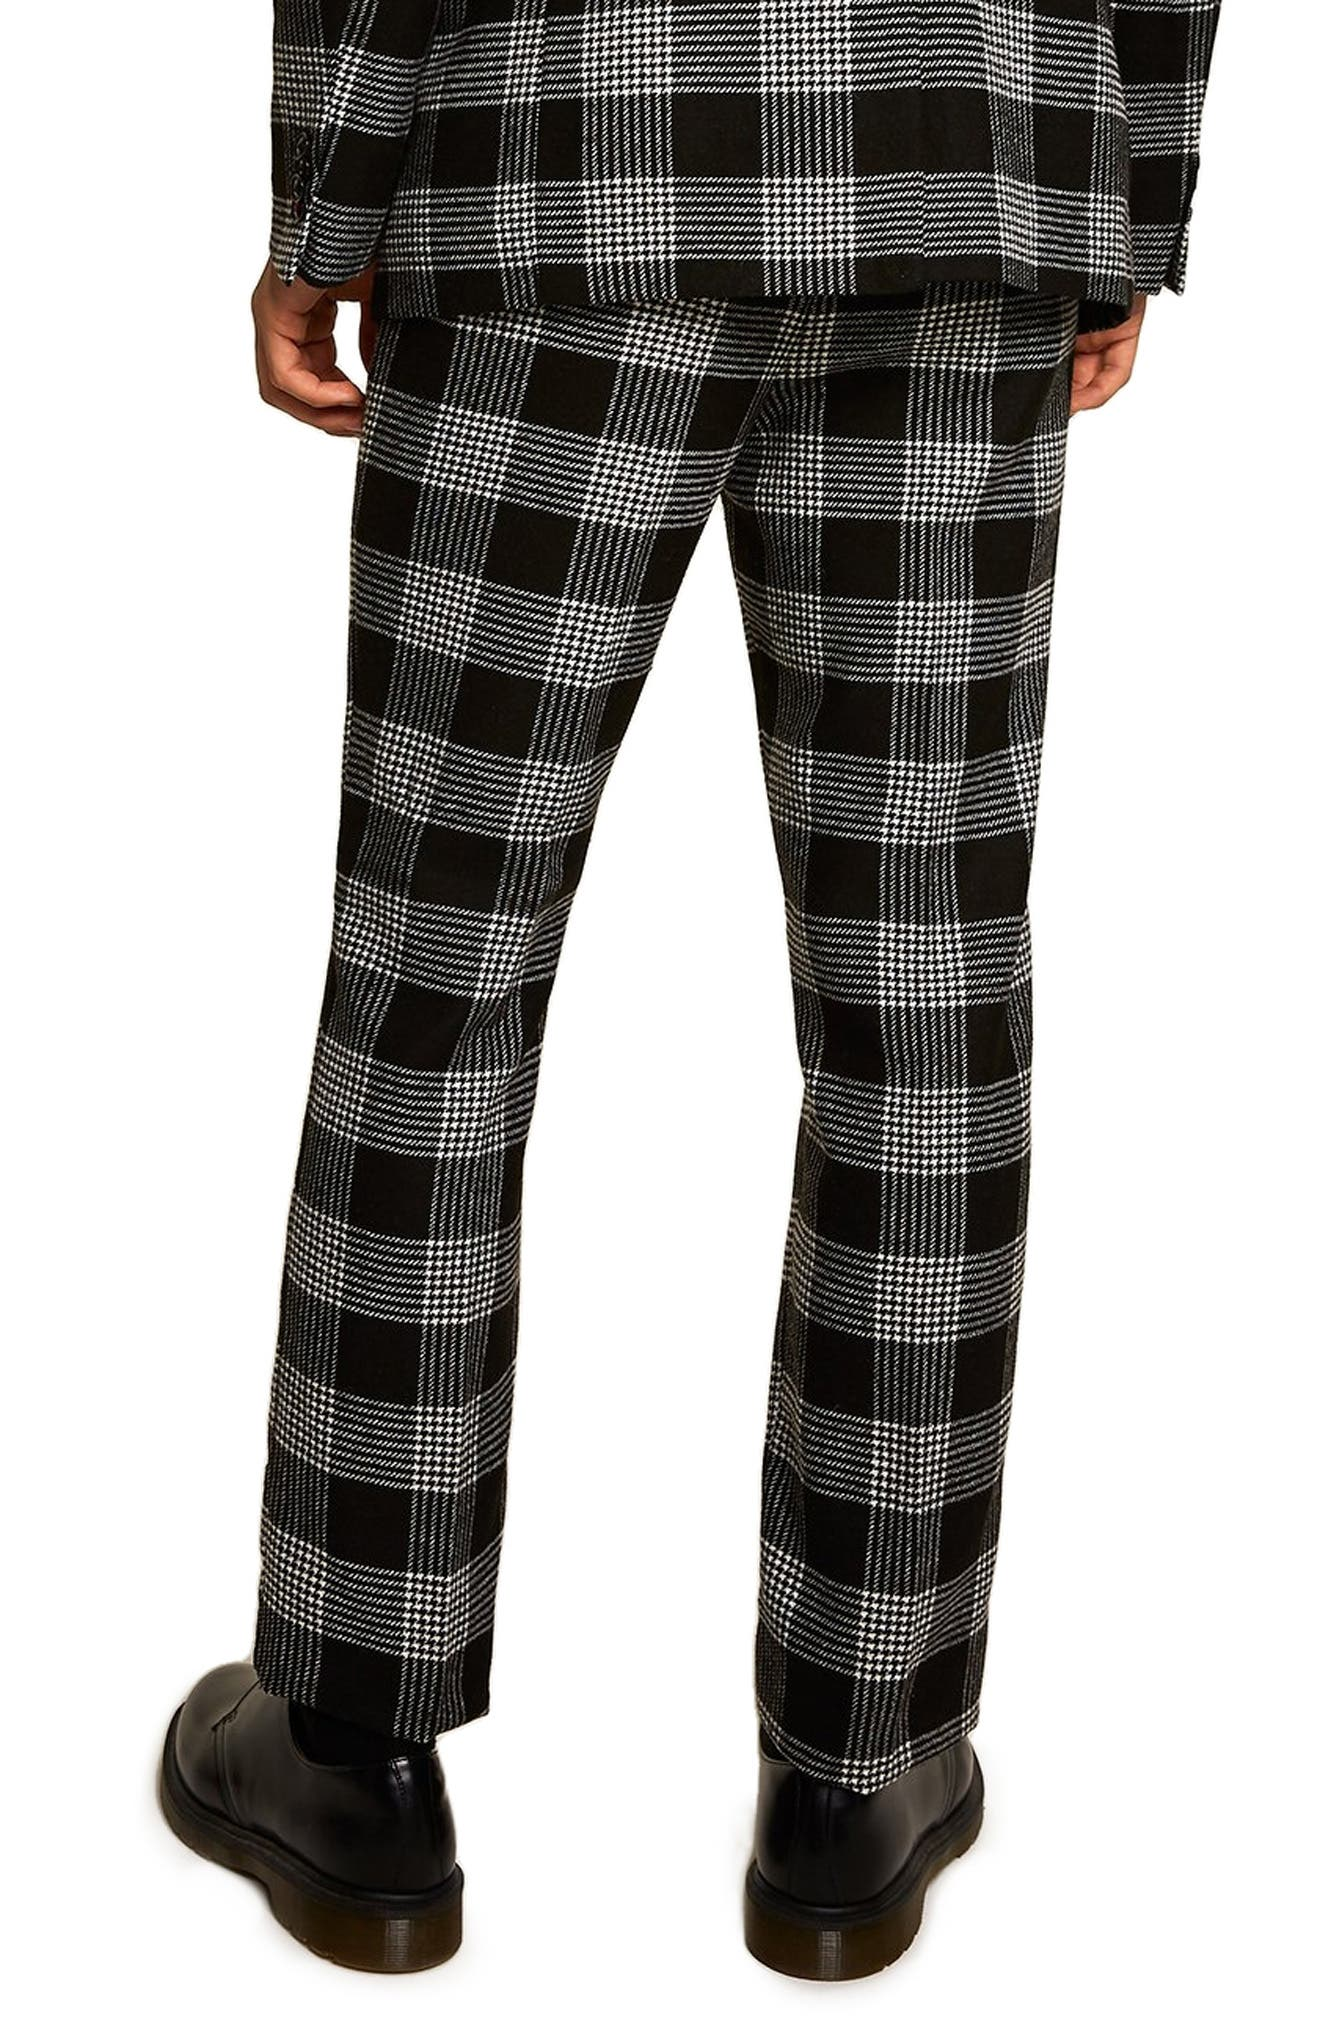 Leigh Classic Check Slim Fit Trousers,                             Alternate thumbnail 2, color,                             BLACK MULTI